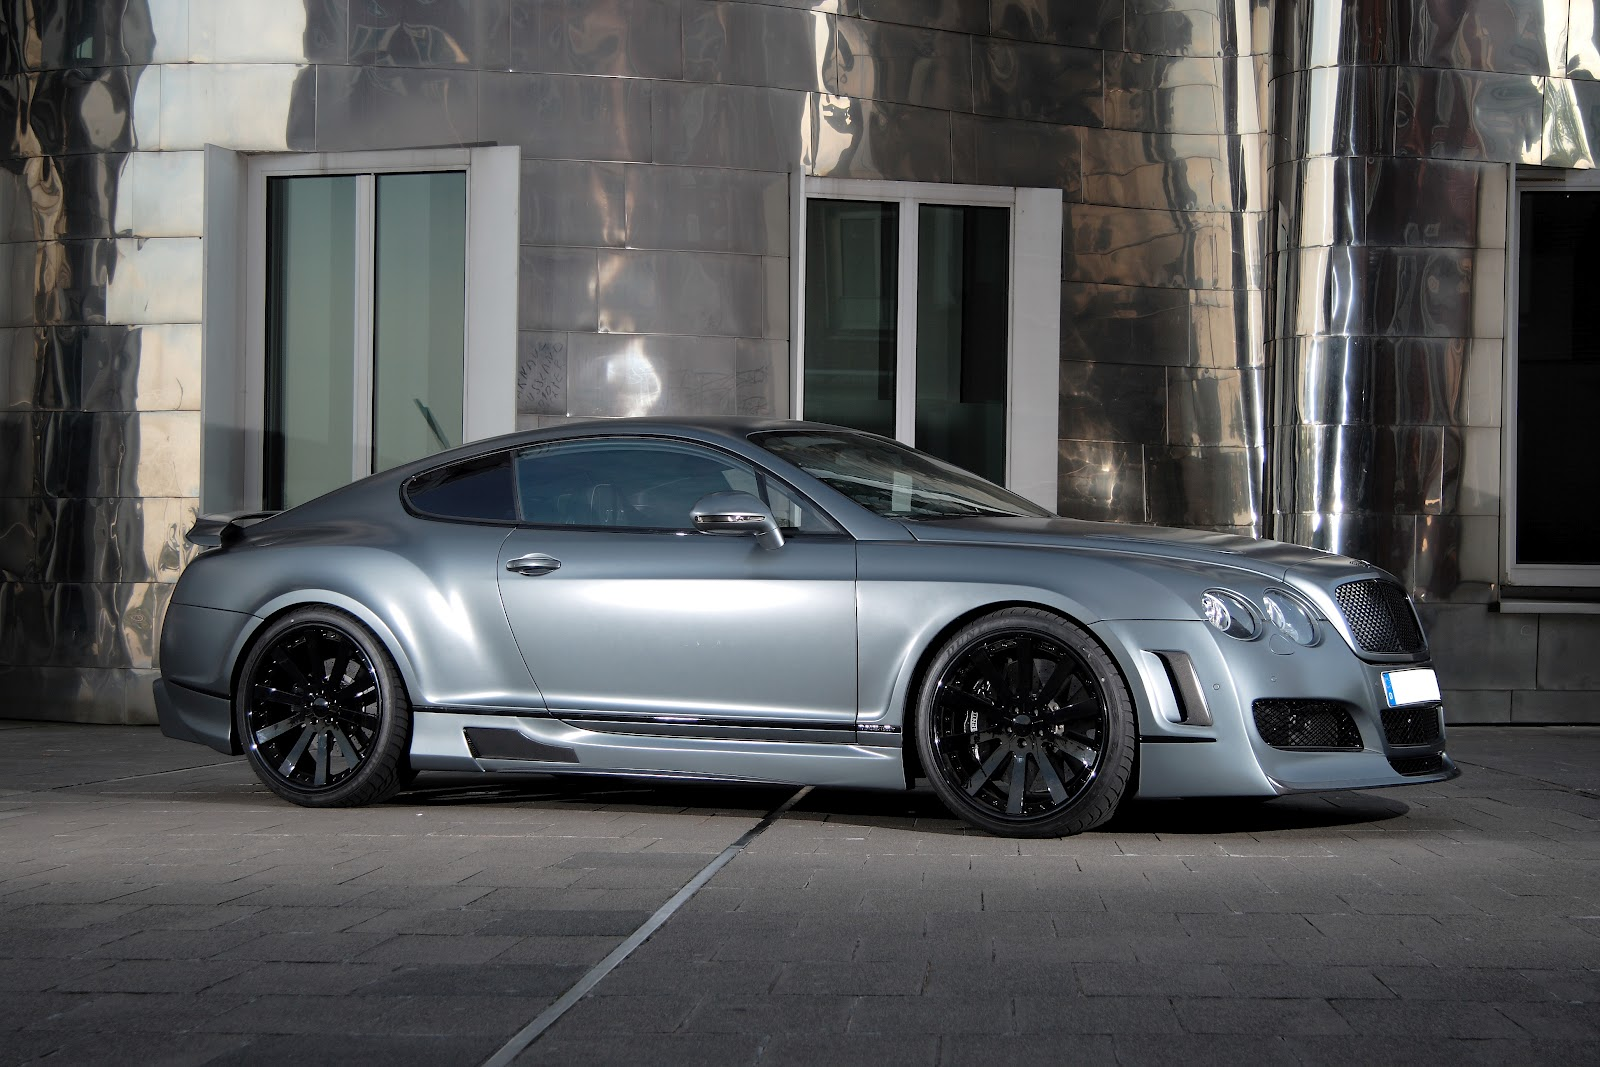 2012 Bentley Continental GT Evaluation With Full Requirements And Images  Wallpapers